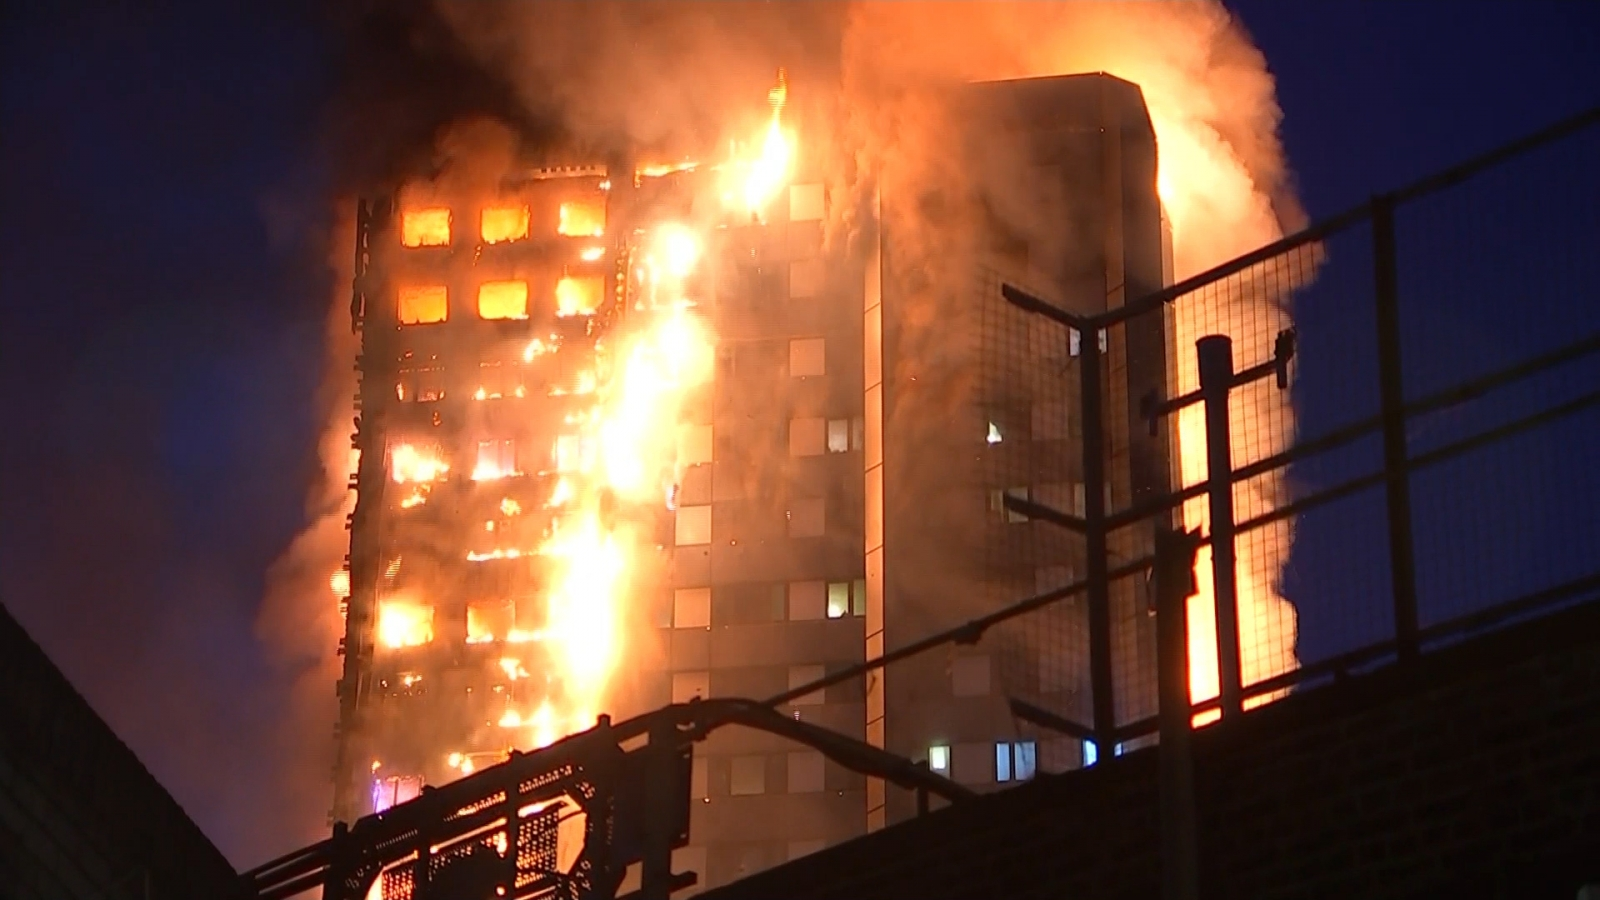 Eyewitnesses Describe Chaotic Scenes At West London Fire.